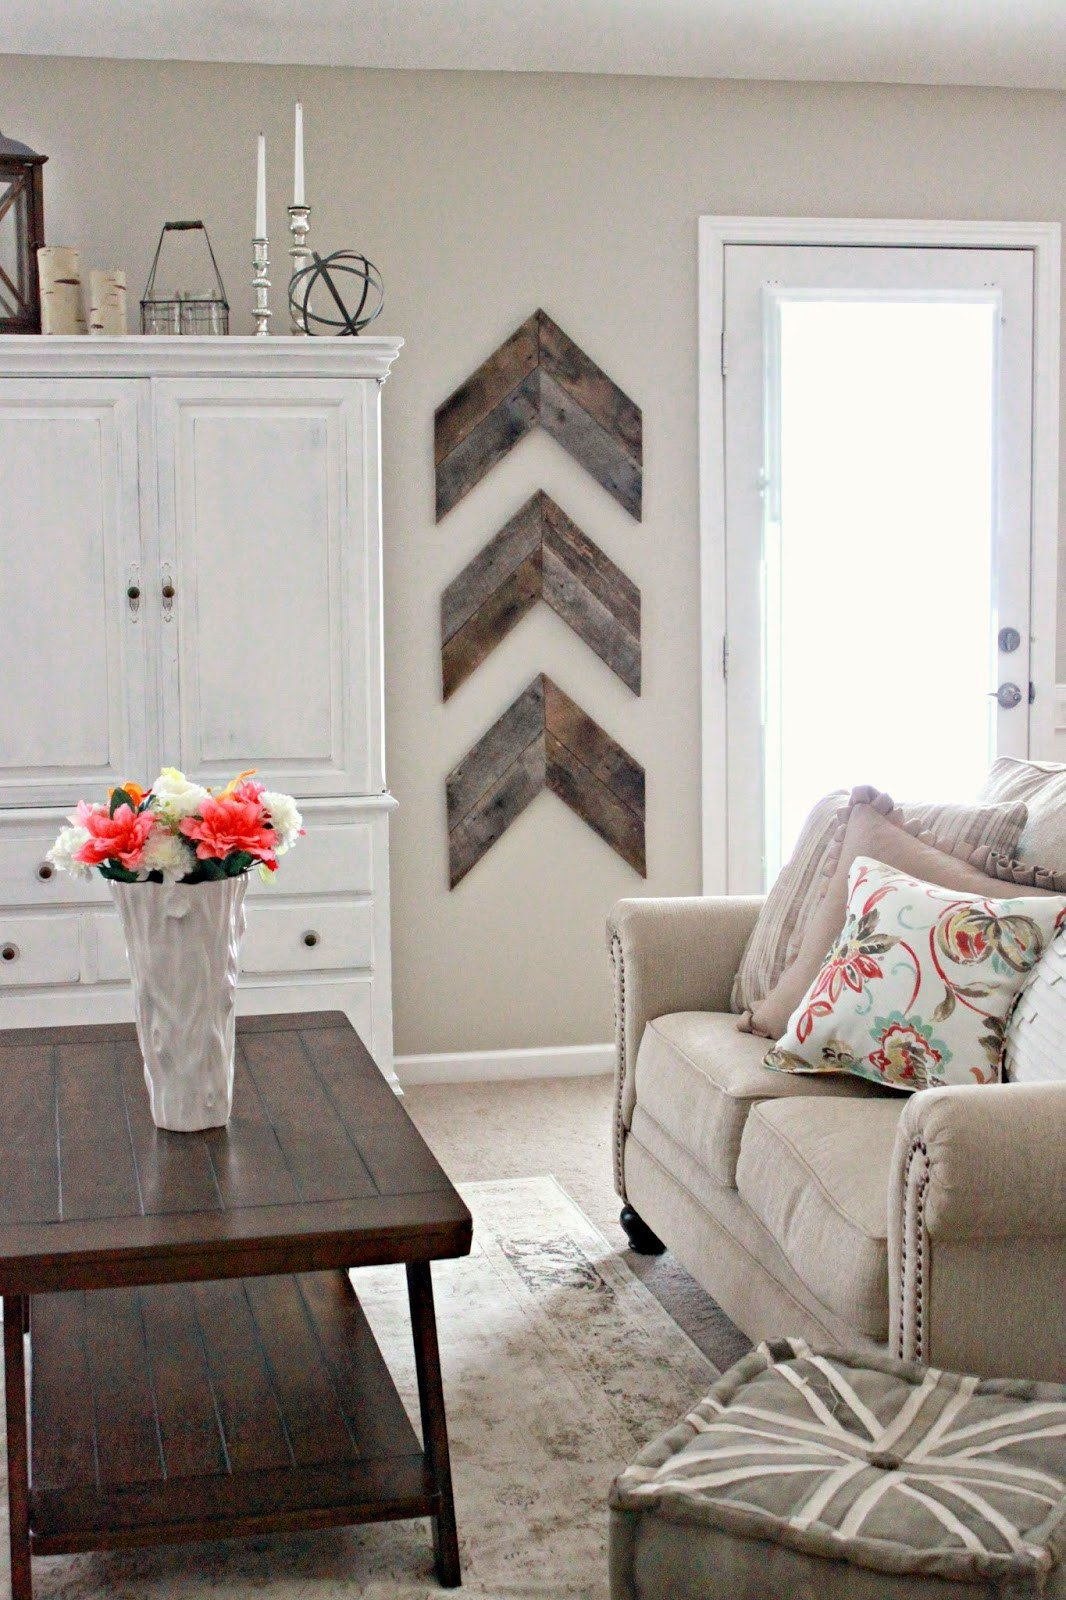 Living Room Wall Decor Ideas Lovely 27 Best Rustic Wall Decor Ideas and Designs for 2019